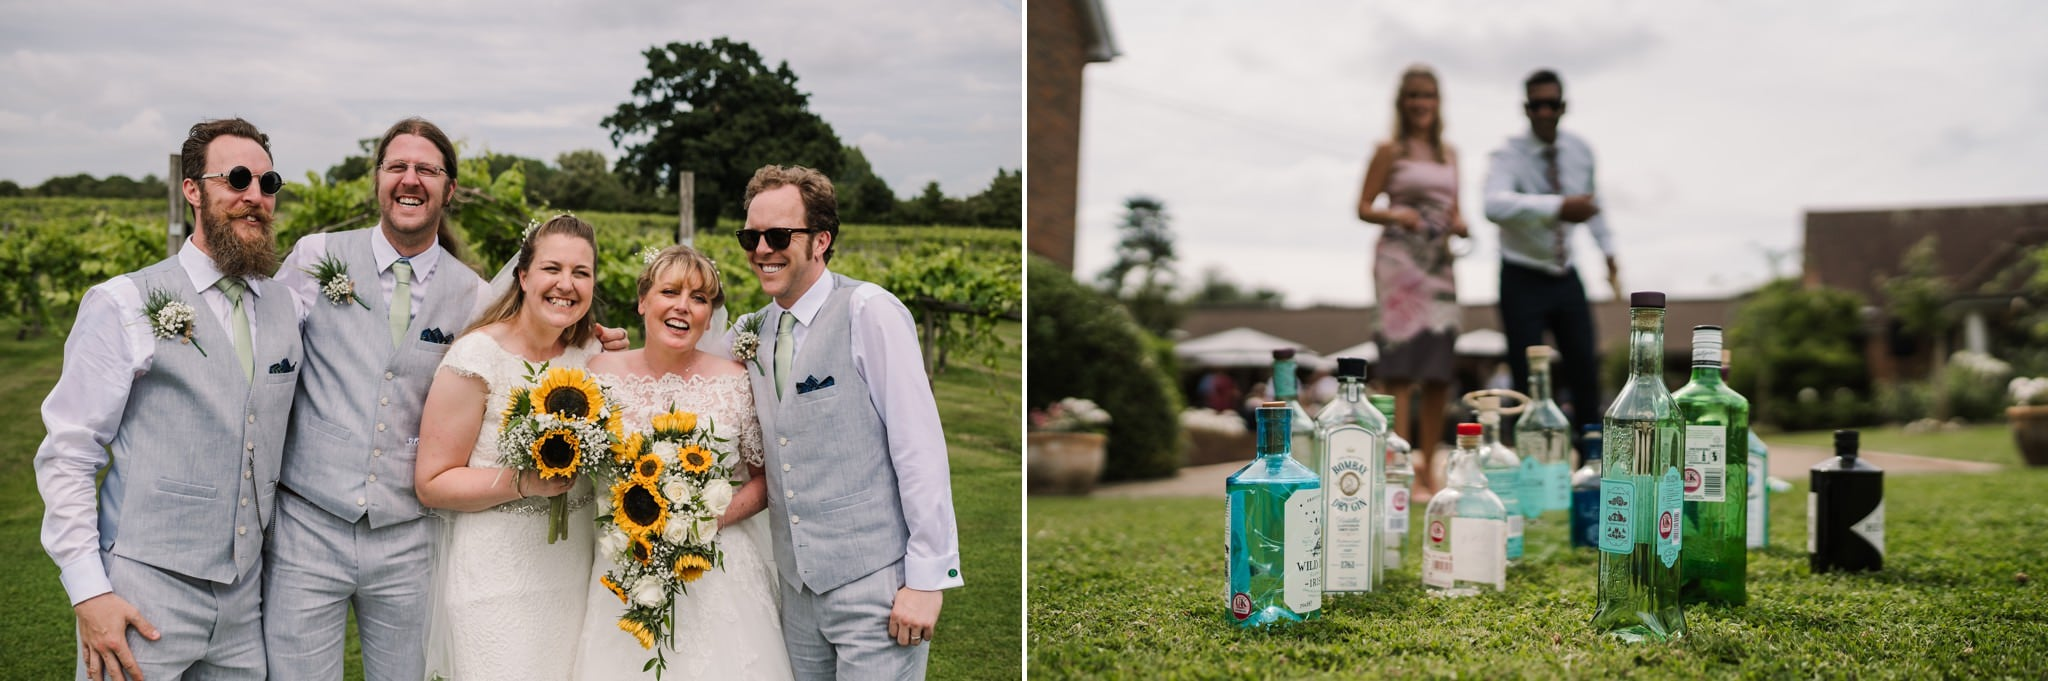 Gin themed games at Three Choirs Vineyard wedding